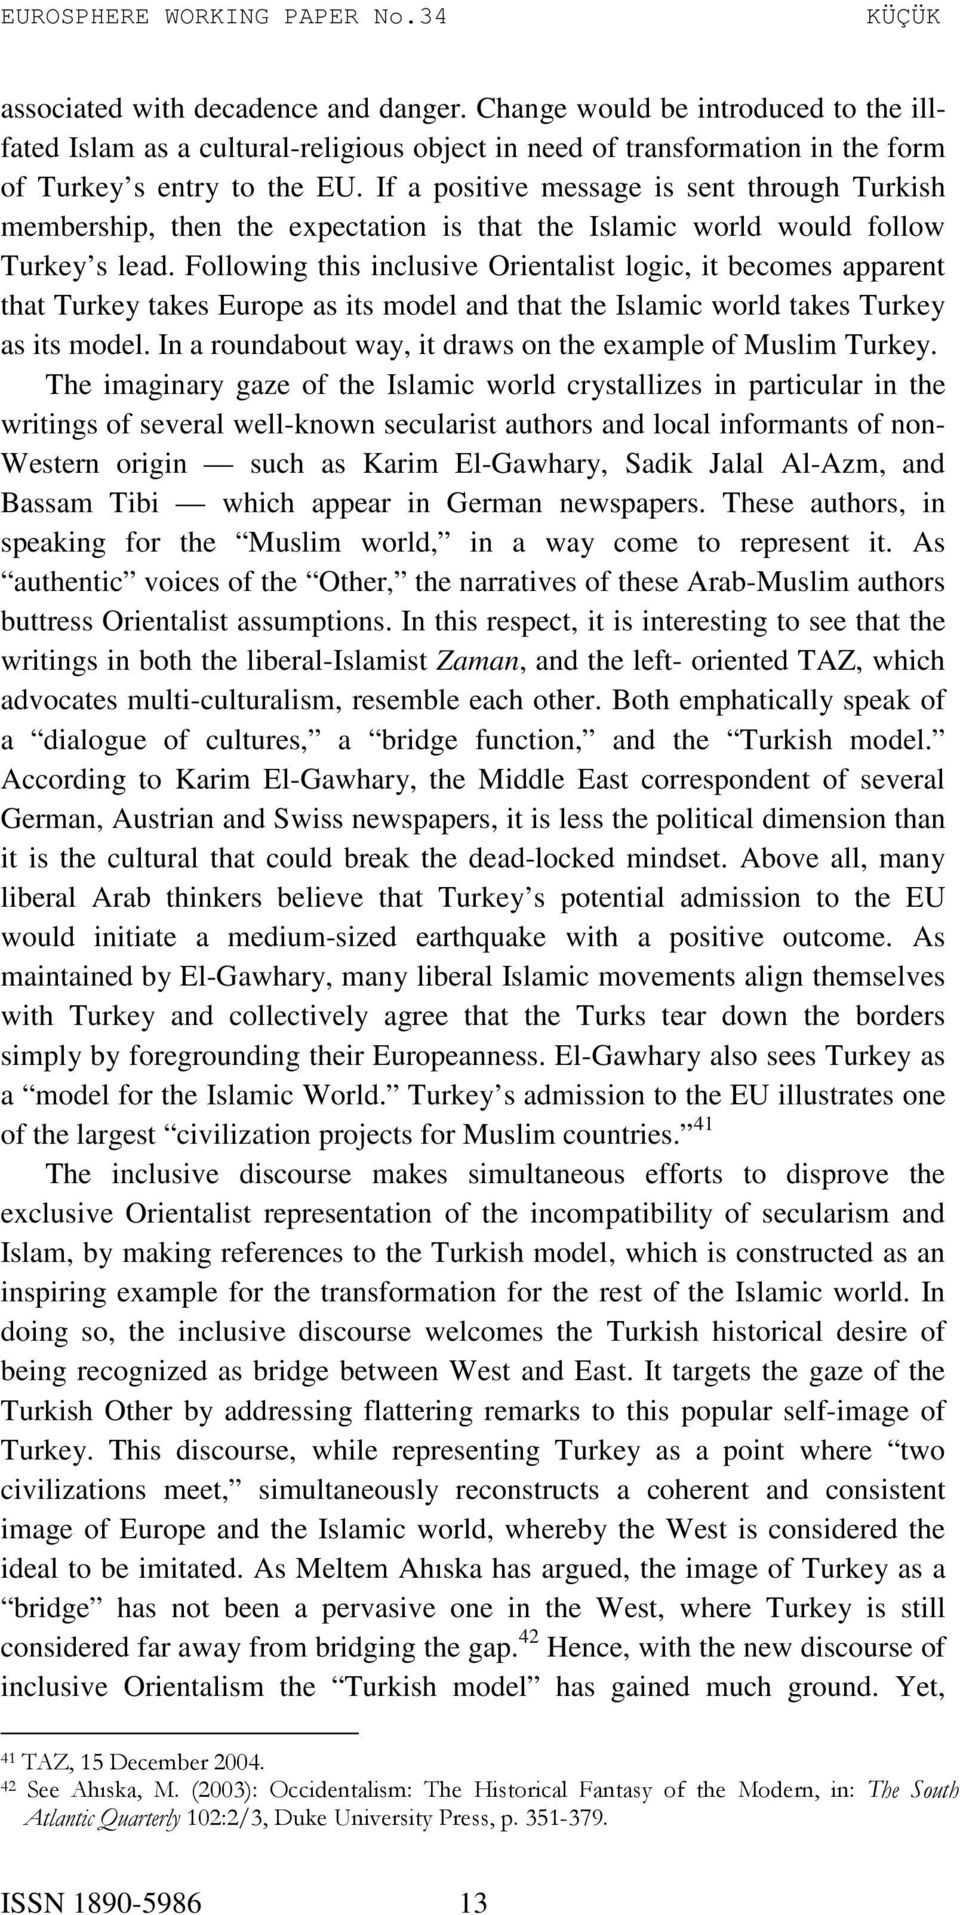 Following this inclusive Orientalist logic, it becomes apparent that Turkey takes Europe as its model and that the Islamic world takes Turkey as its model.